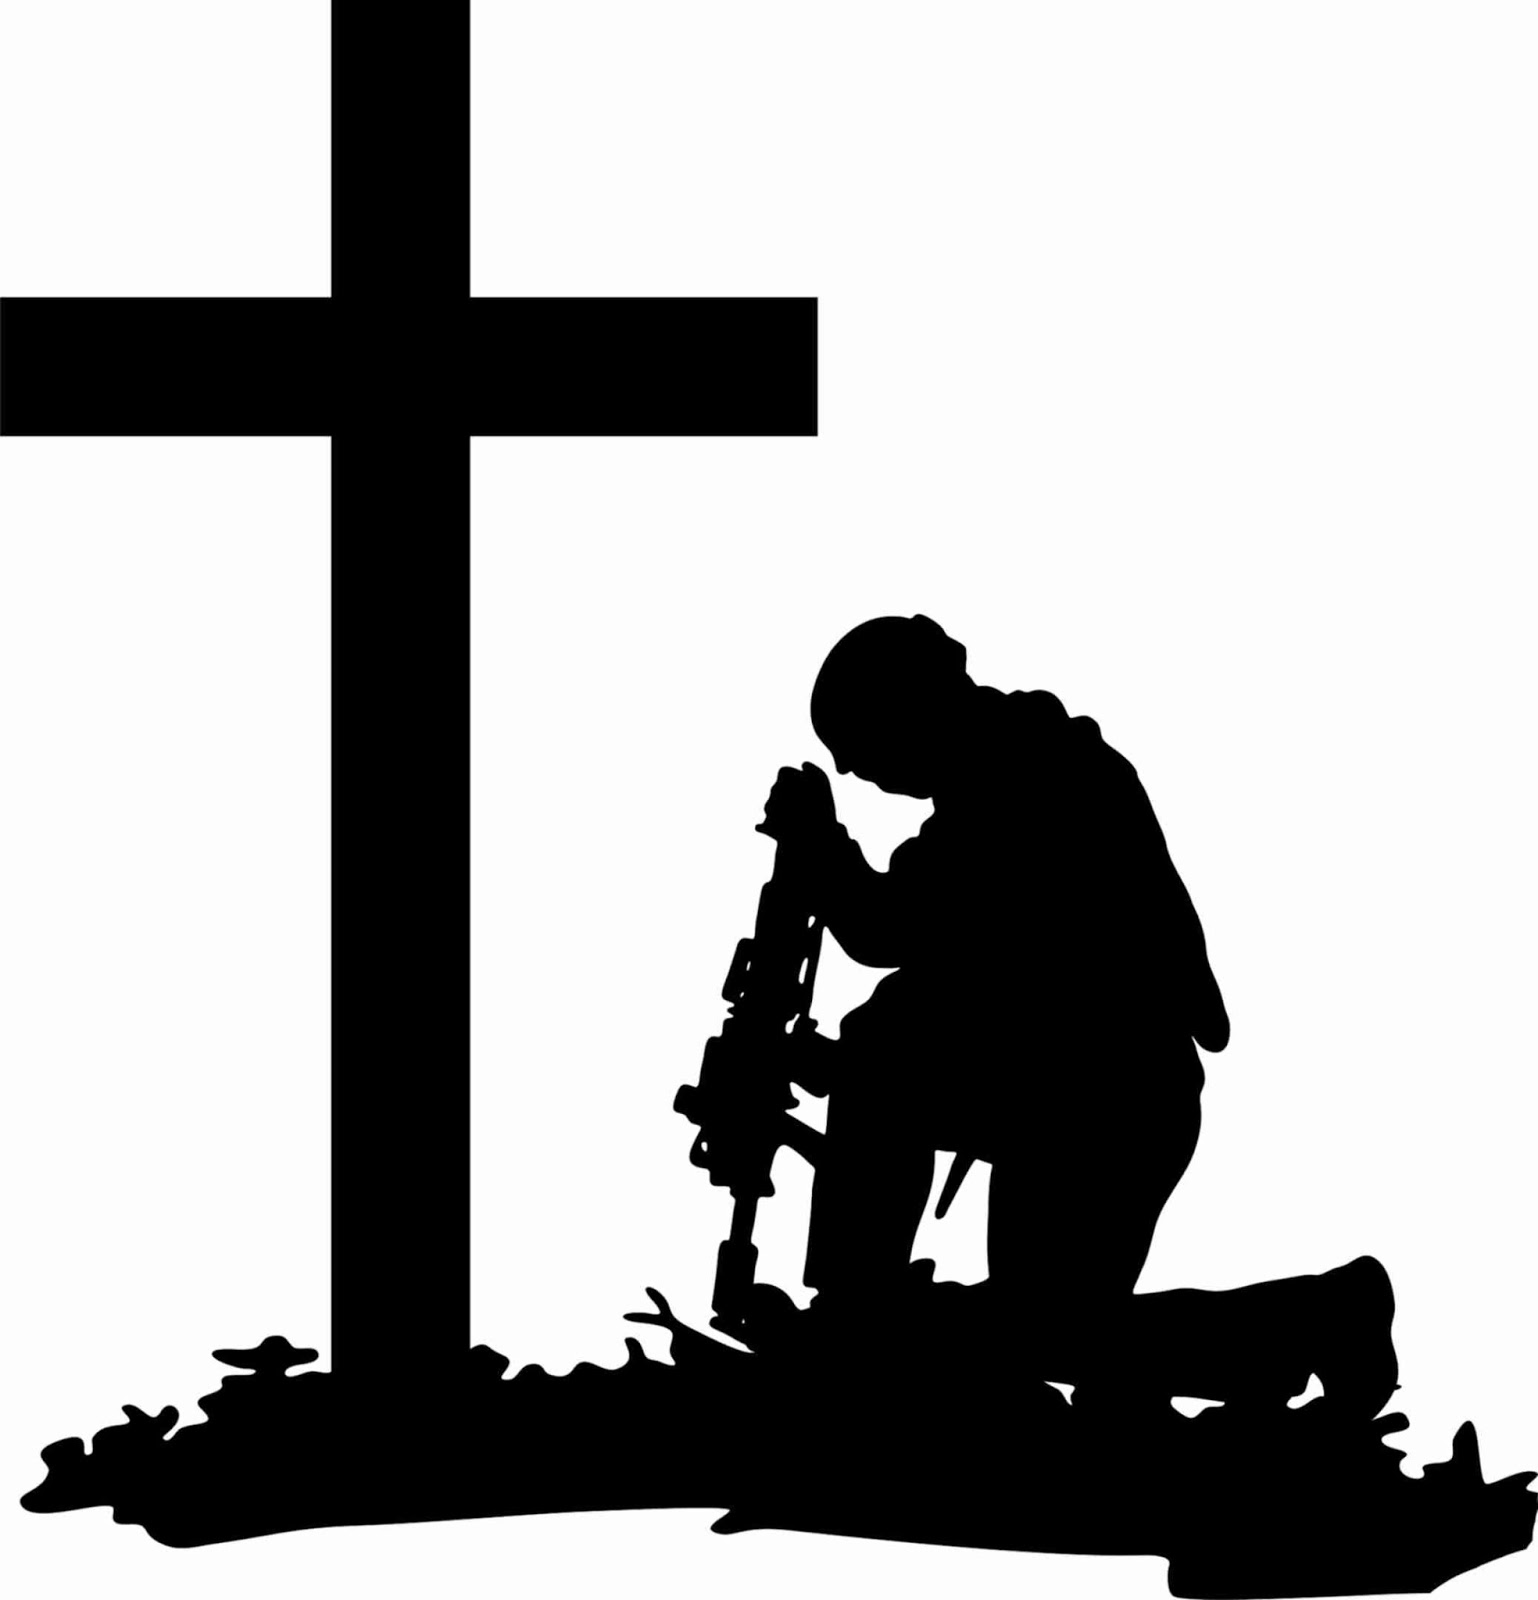 Fallen Soldier Battle Cross Silhouette At Getdrawings Free For